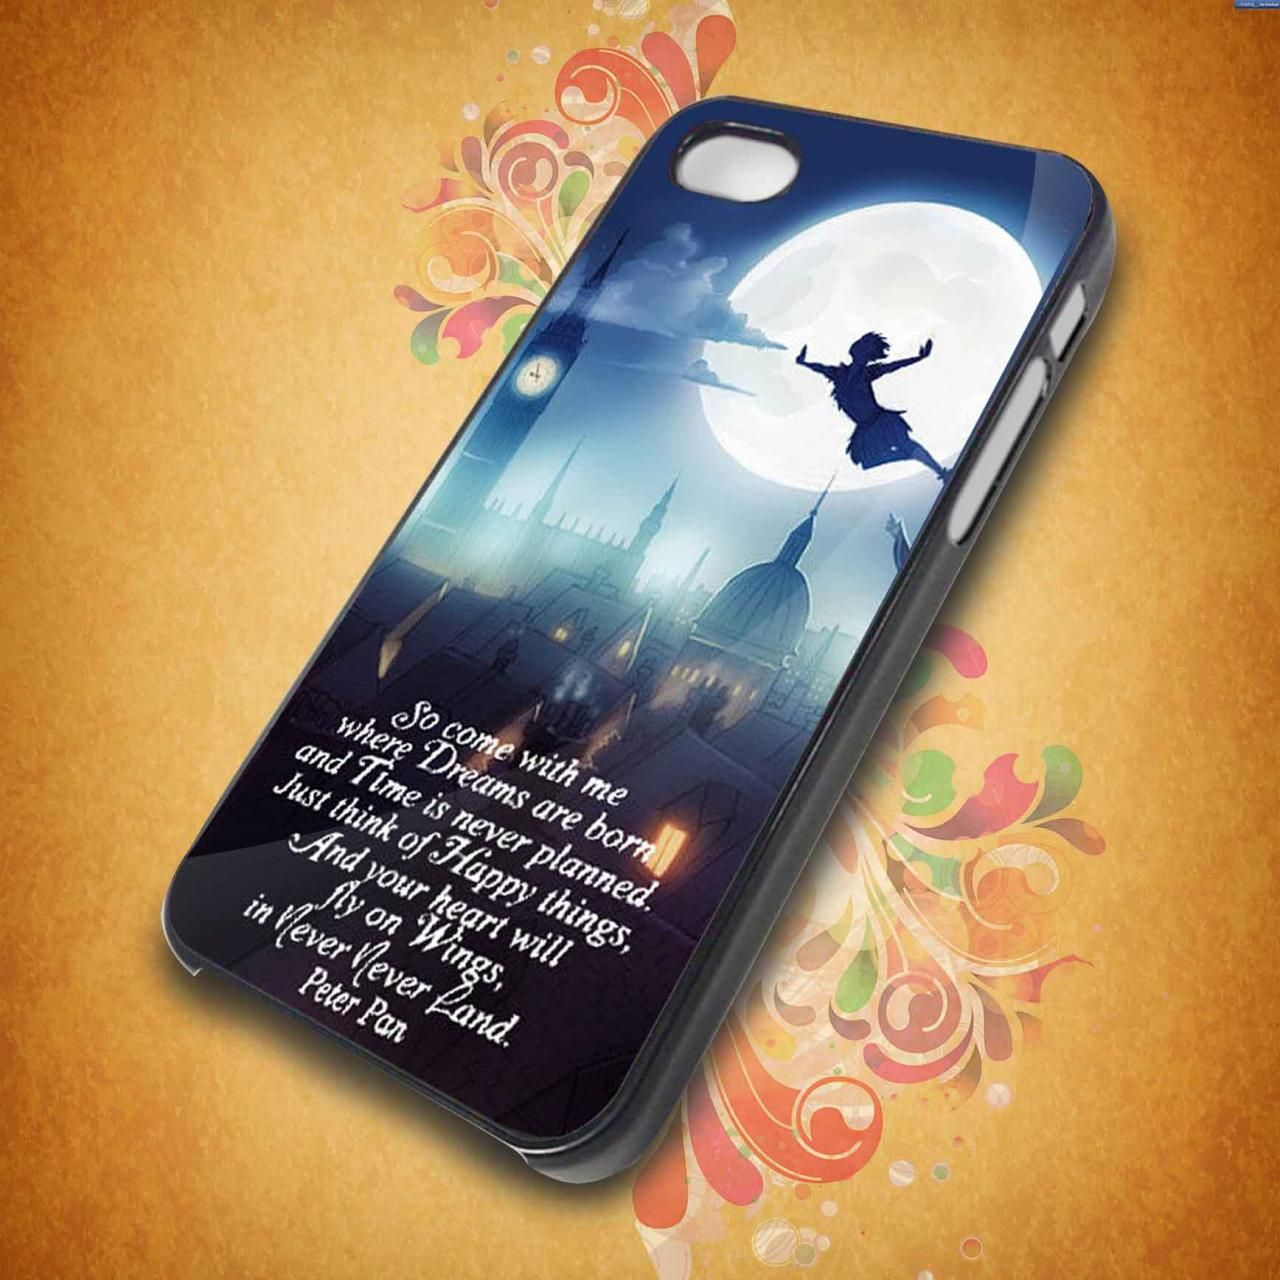 Pin by Rachel Caldwell on I ❤ LuulLa   Apple phone, Iphone cases ...